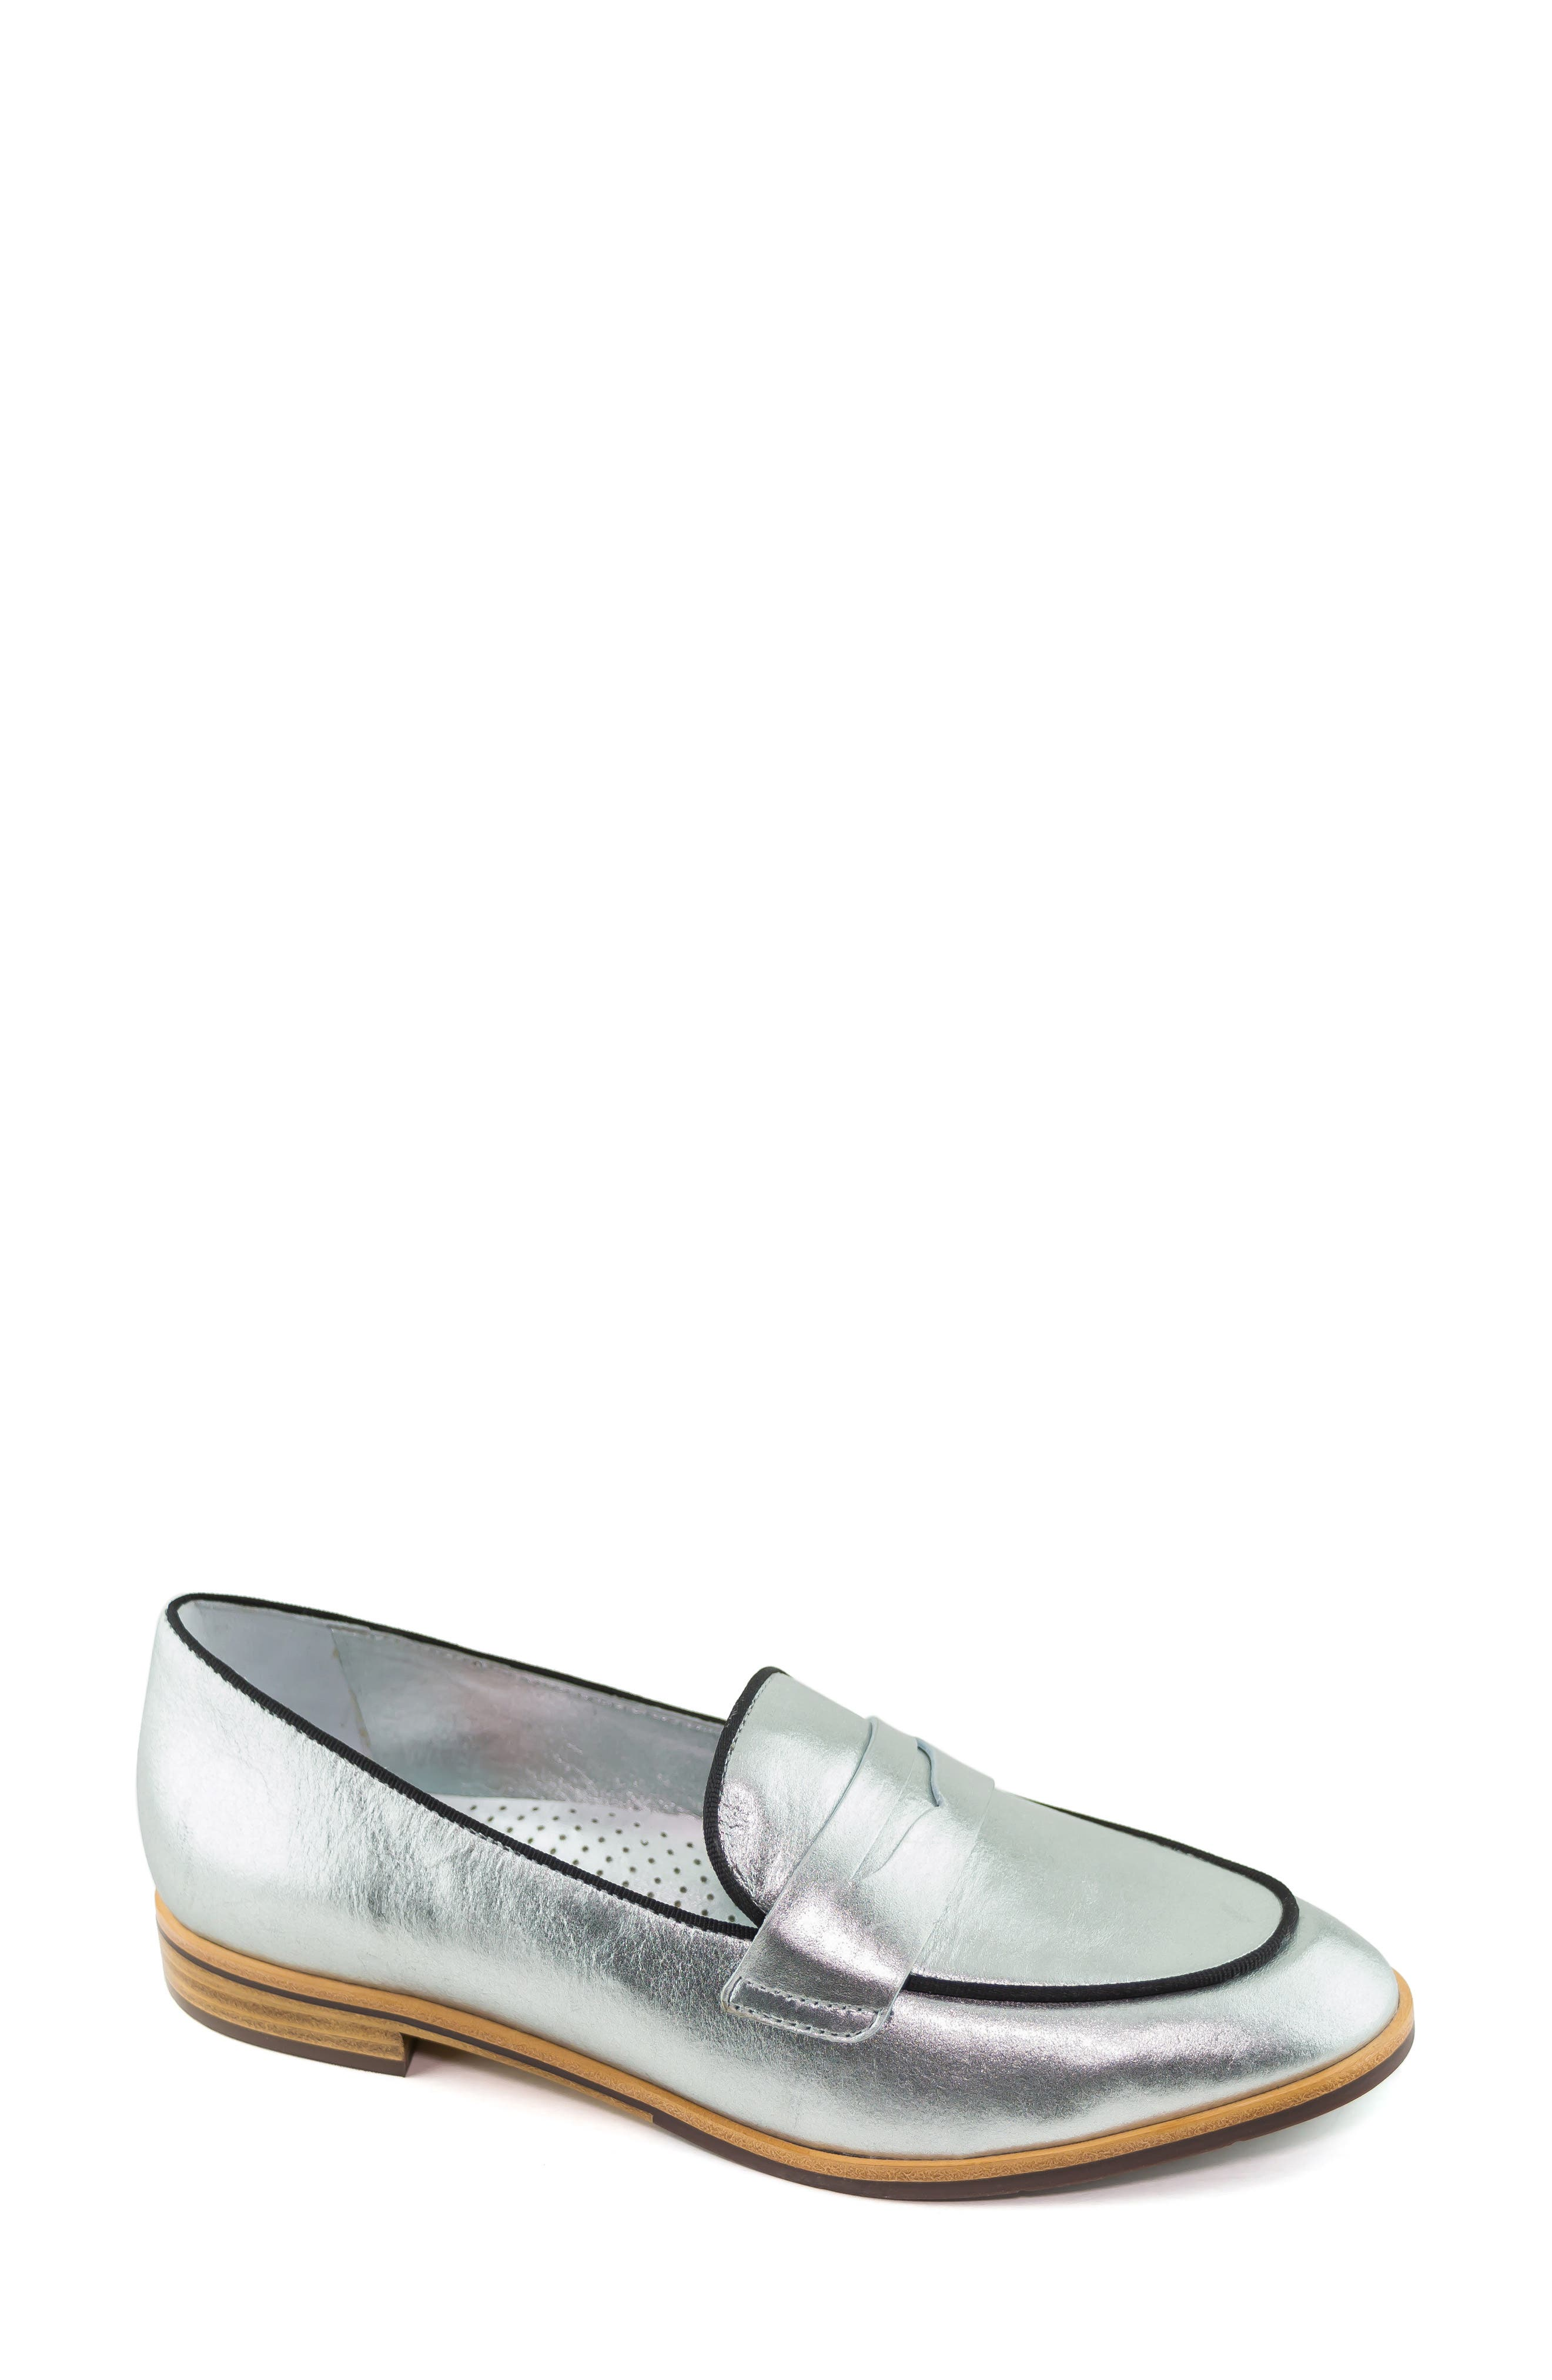 Bryant Park Loafer, Main, color, GIPSY SILVER LEATHER